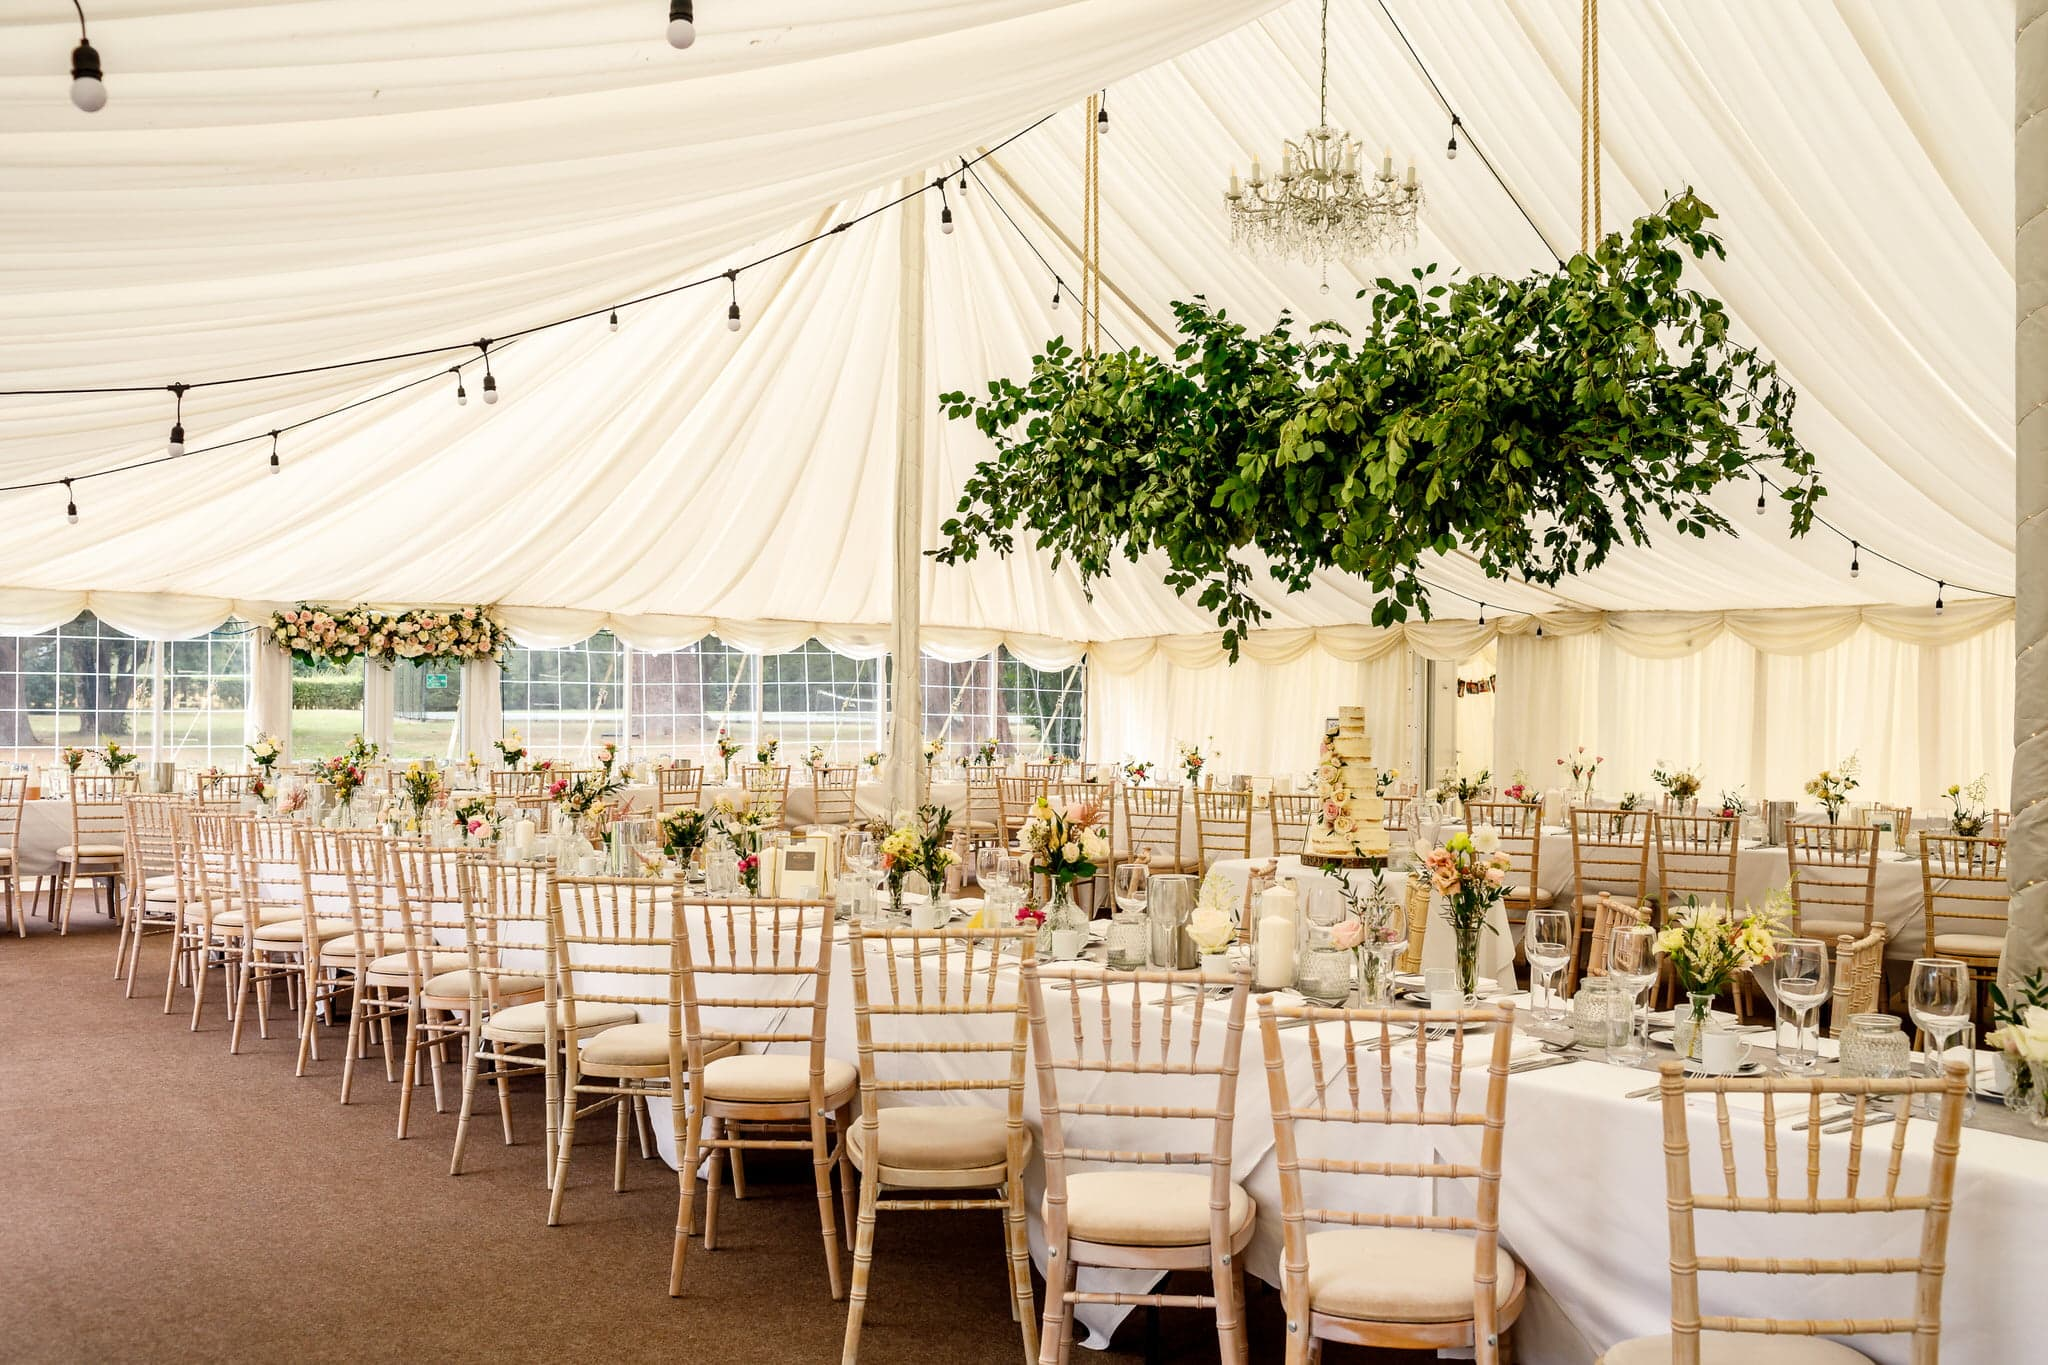 Barrington Hall marquee wedding